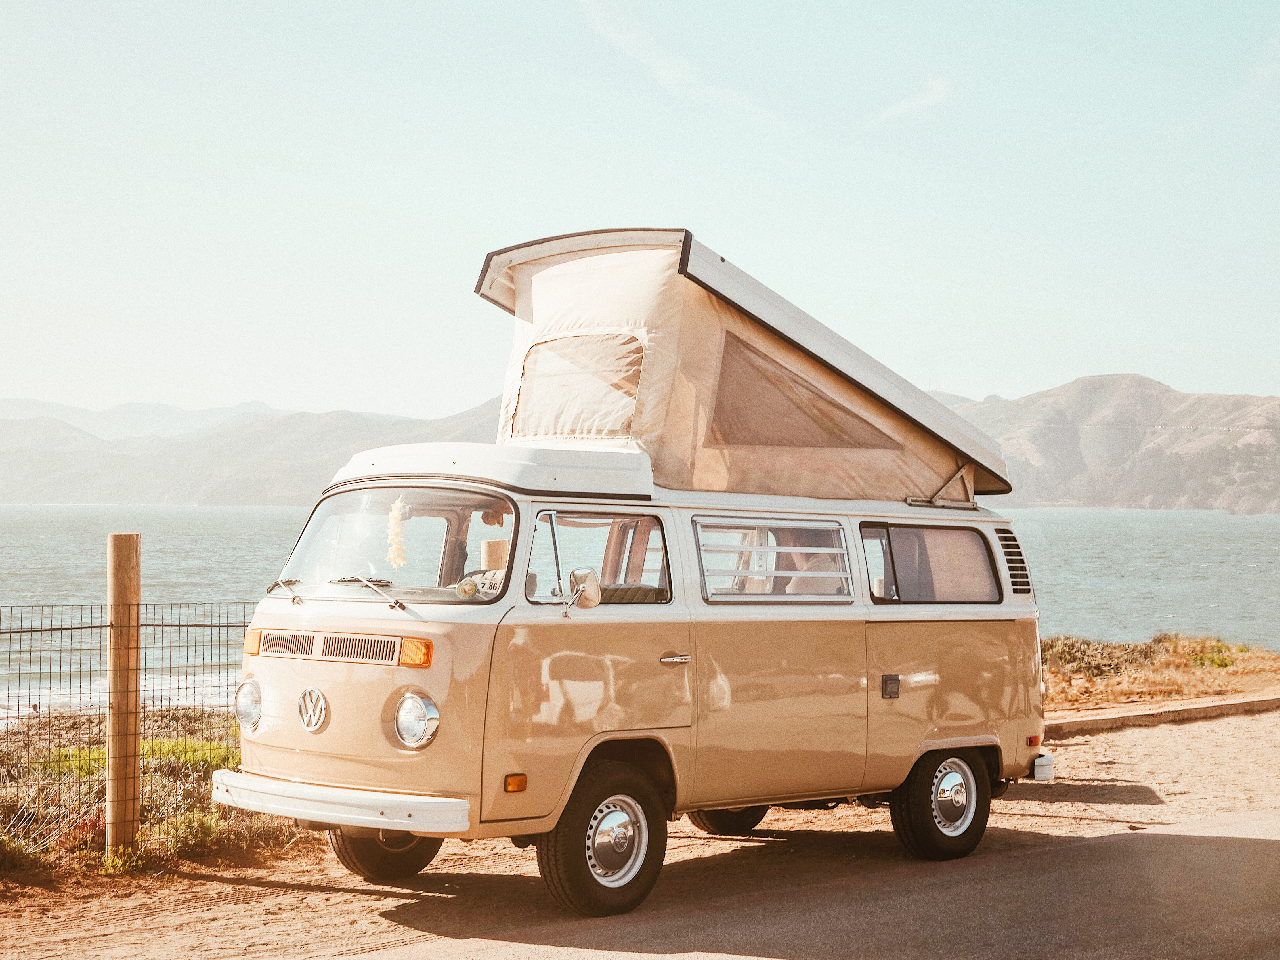 UK Holidaymakers Flock to Purchase Used Caravans as Staycations Close to Home Become the Obvious Option for 2021 Holidays